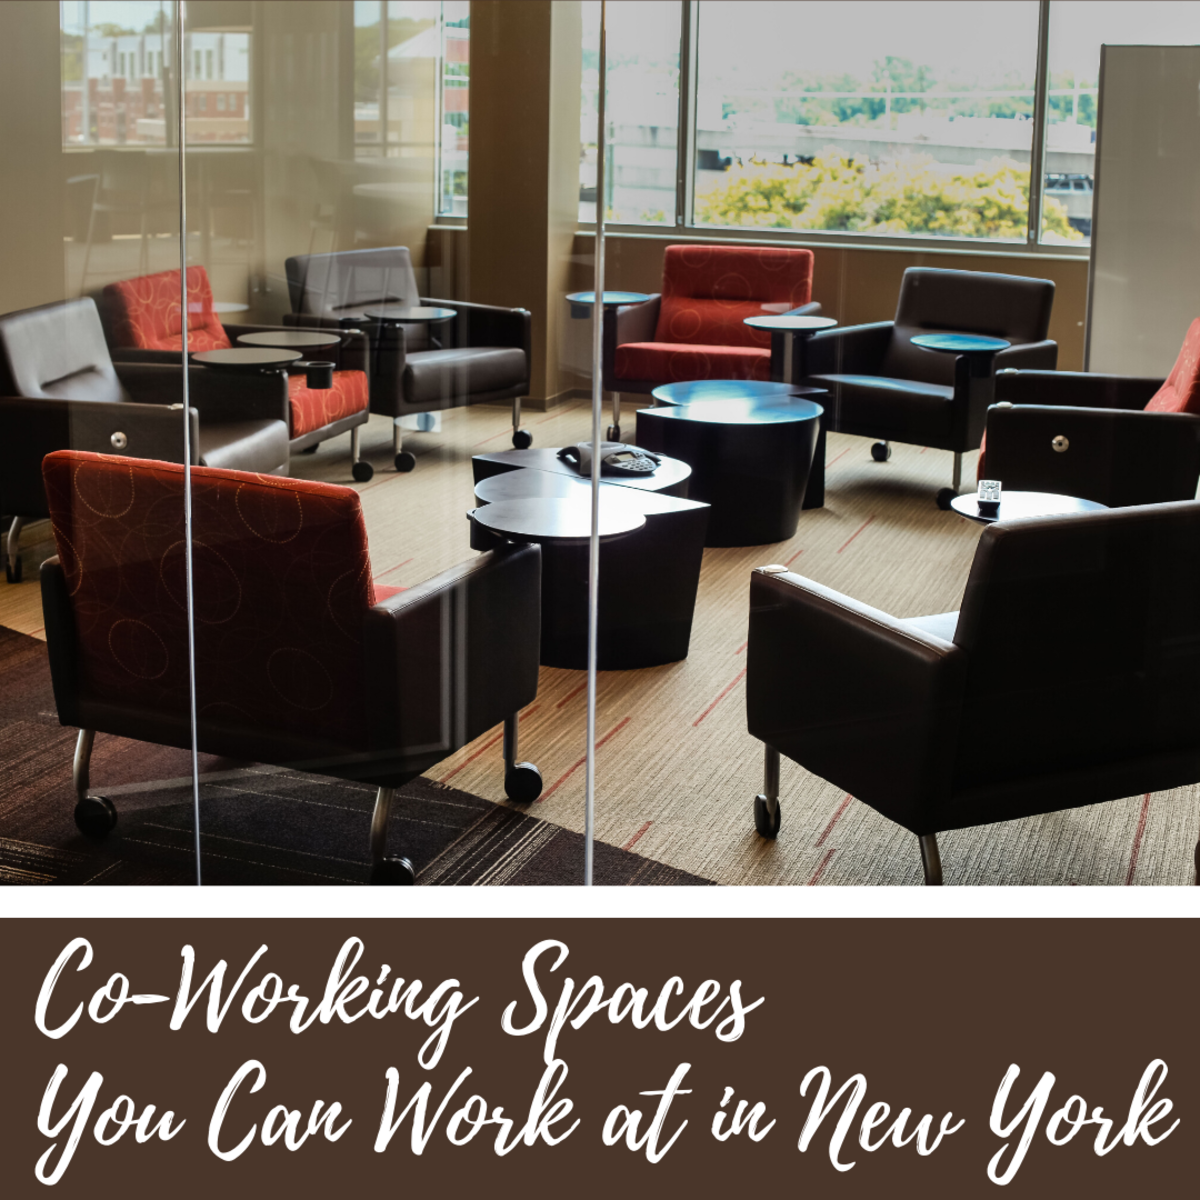 These great work spaces in New York will help you be a more efficient worker.